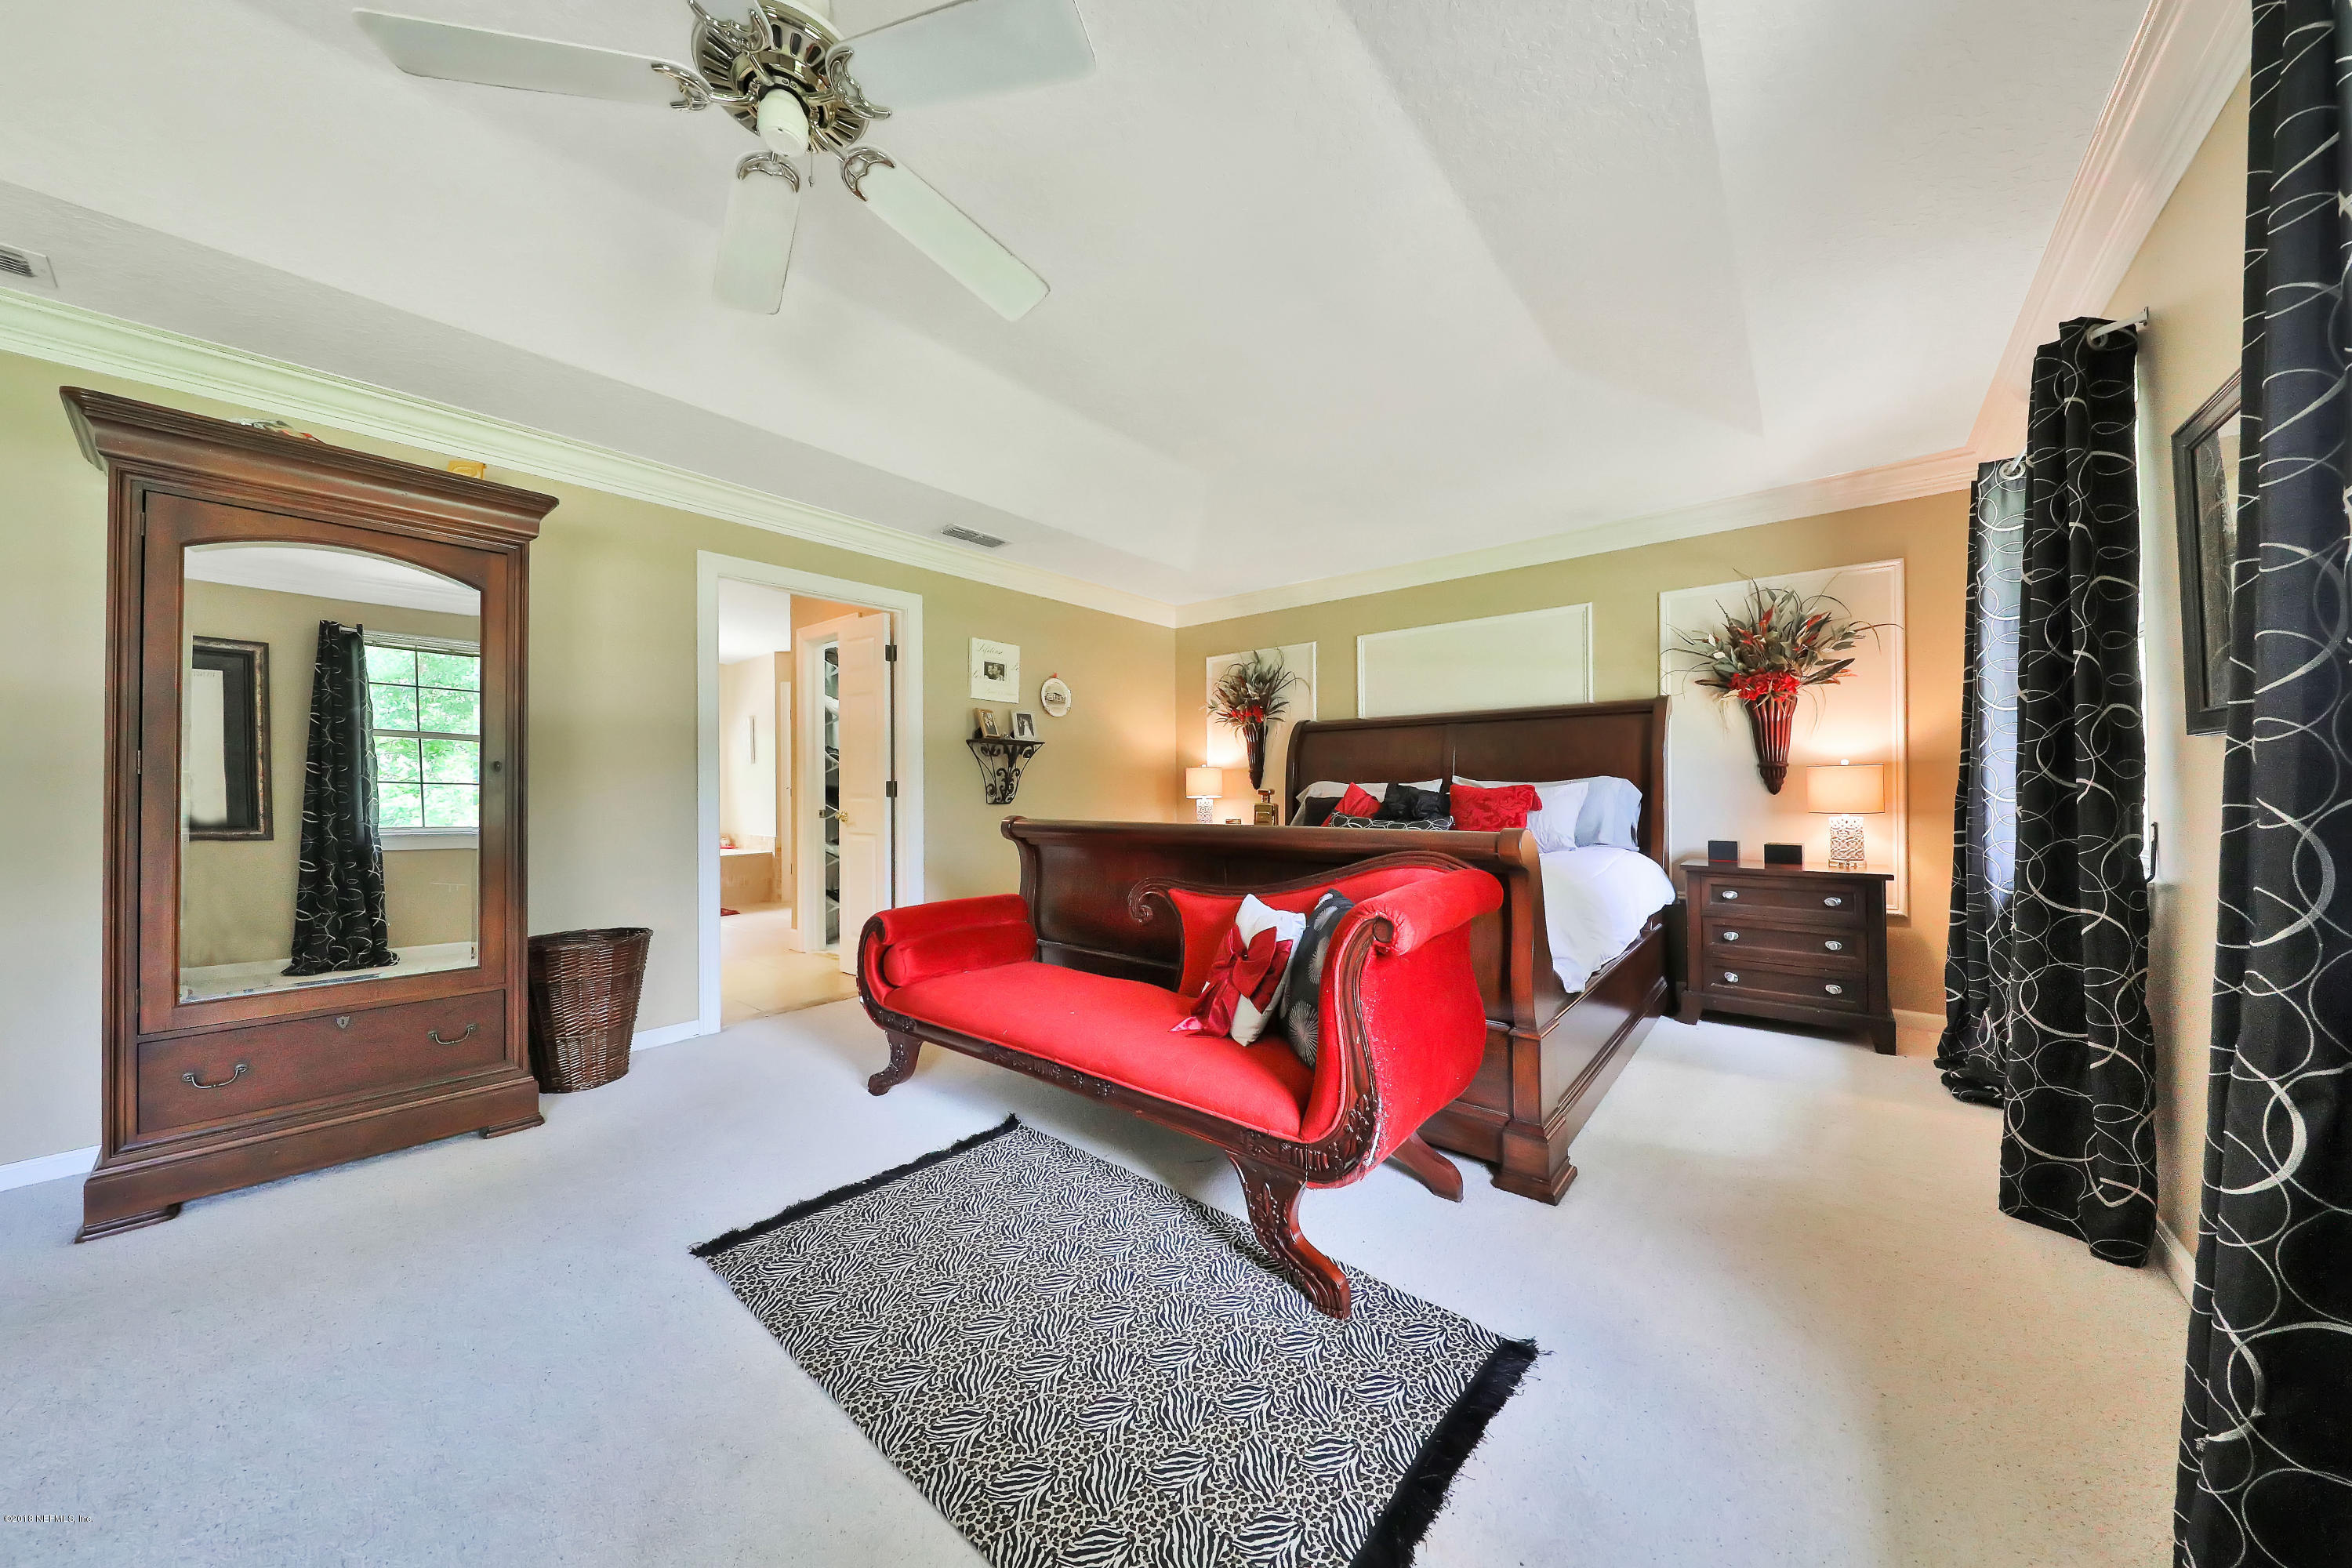 2169 HAWKCREST, ST JOHNS, FLORIDA 32259, 4 Bedrooms Bedrooms, ,3 BathroomsBathrooms,Residential - single family,For sale,HAWKCREST,949584